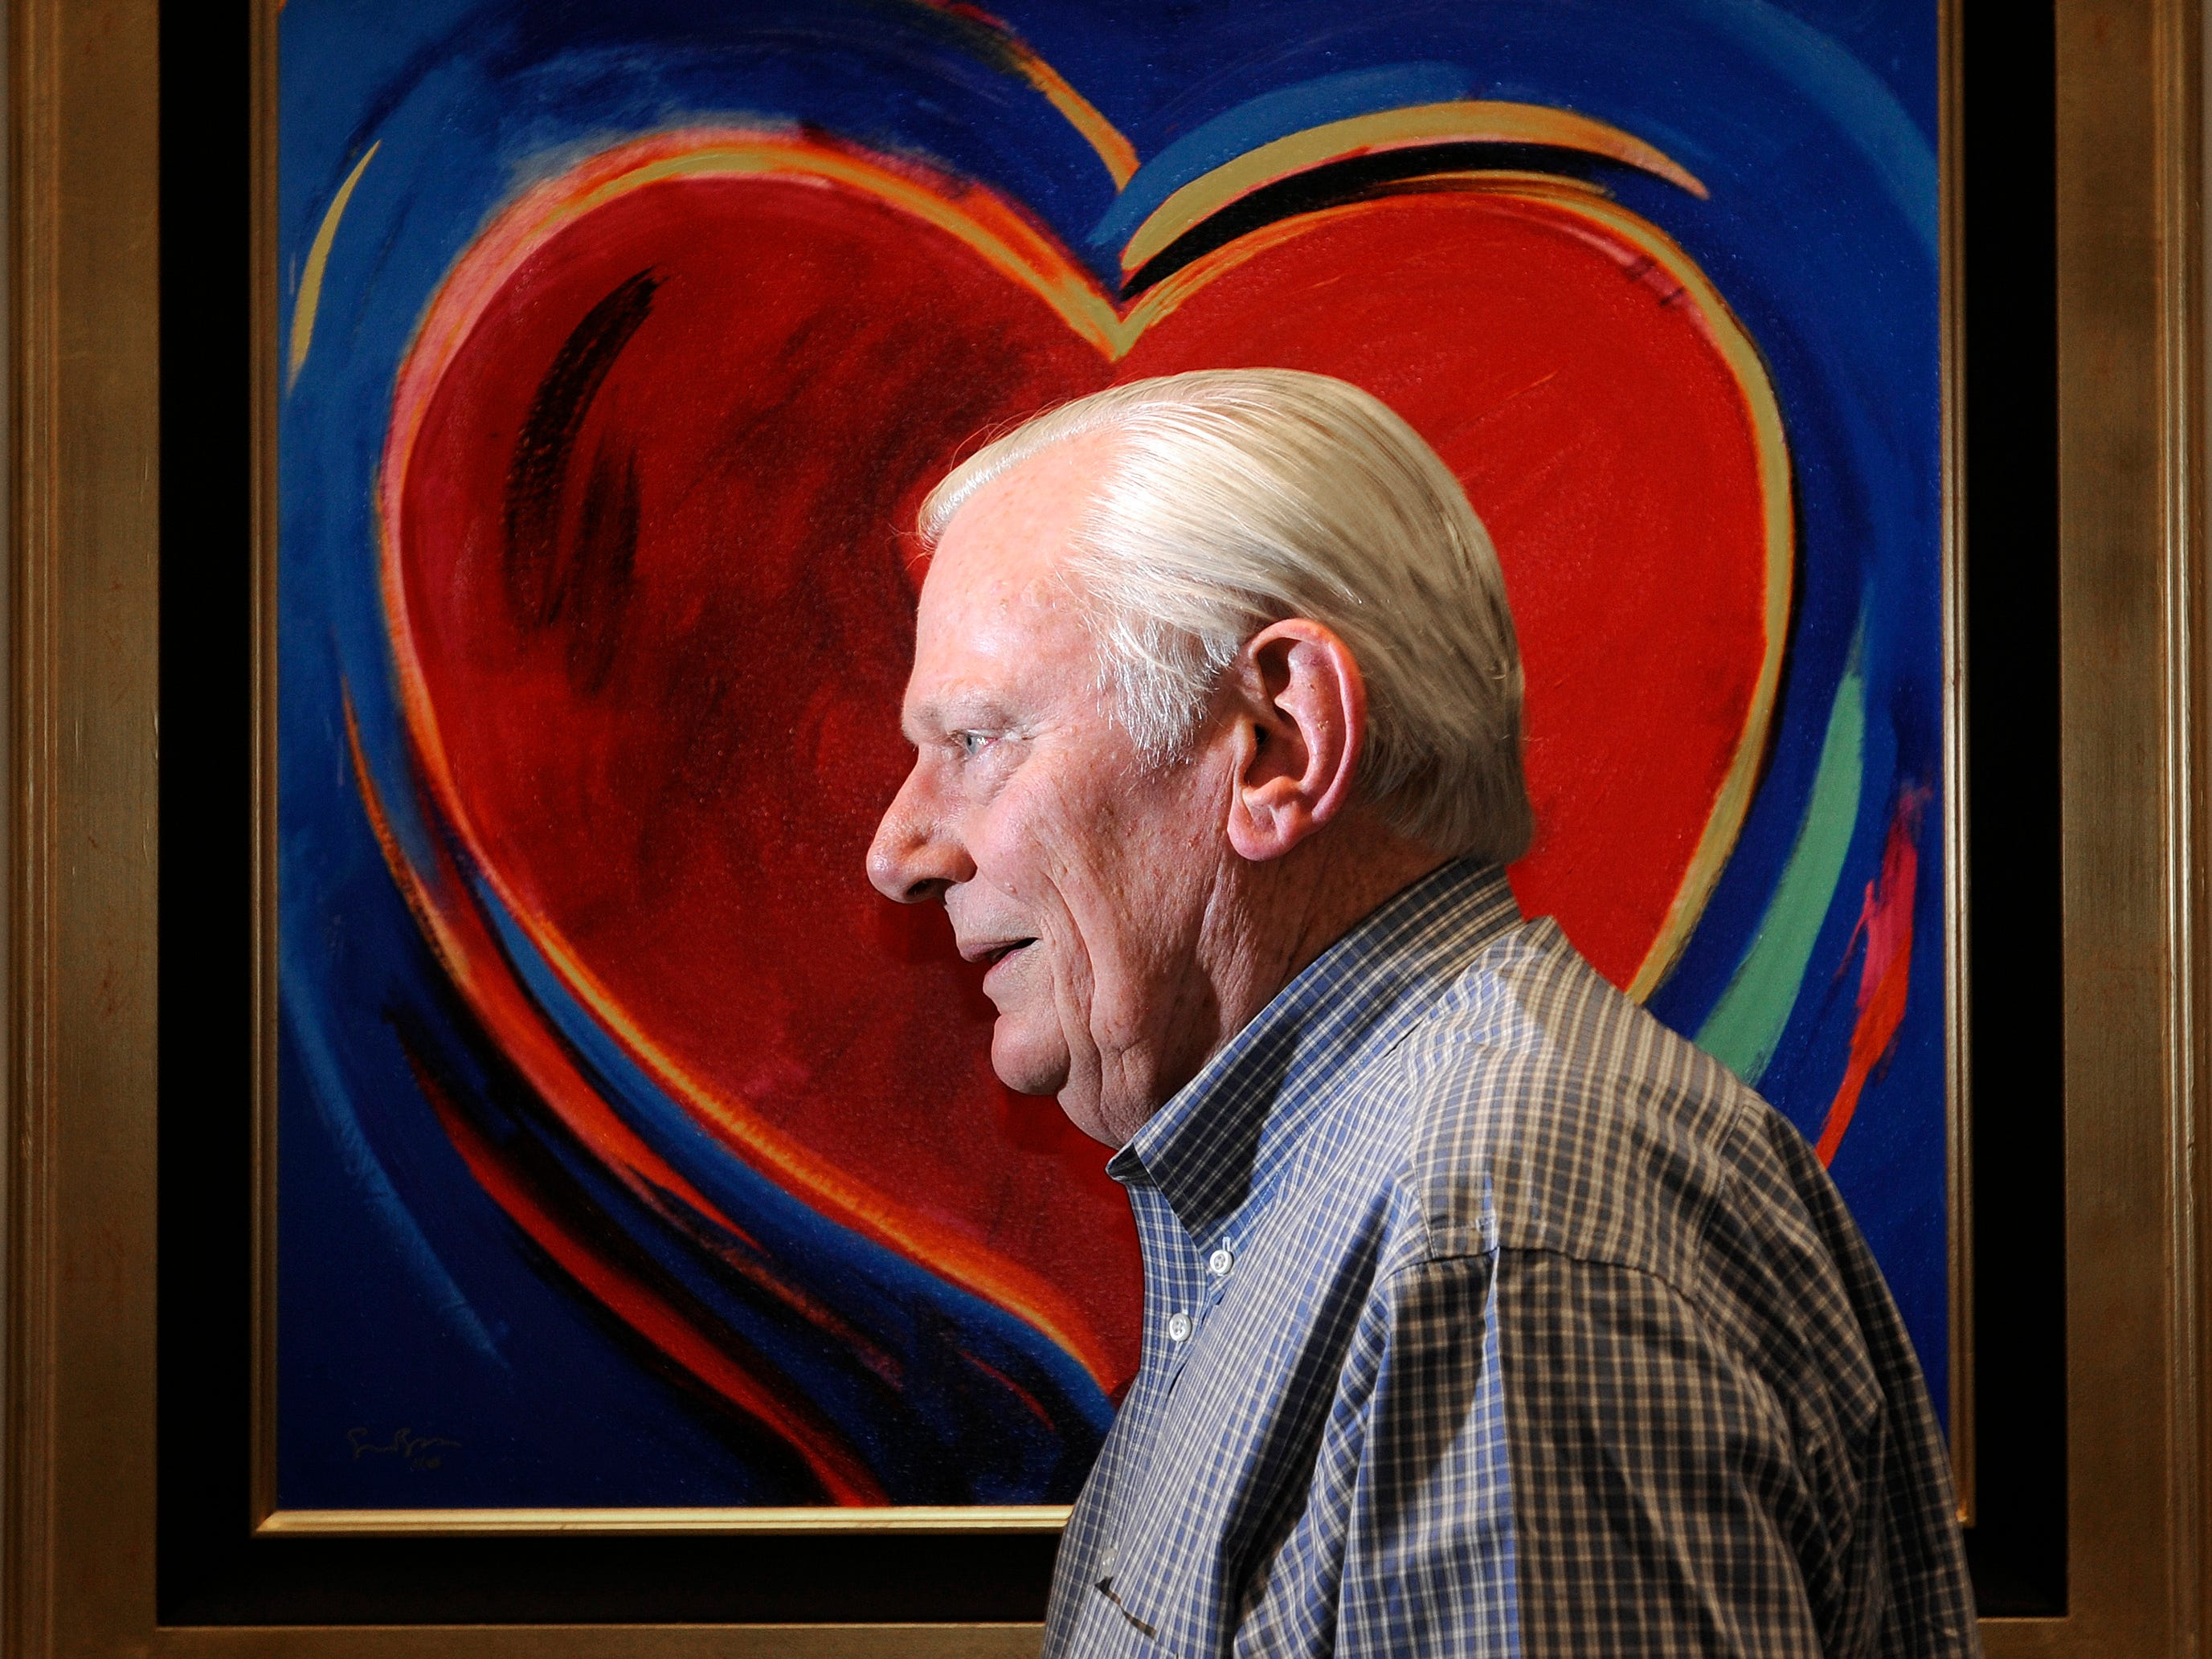 Herb Kelleher, co-founder, Chairman Emeritus and former CEO of Southwest Airlines, in his Dallas office on June 10, 2011.